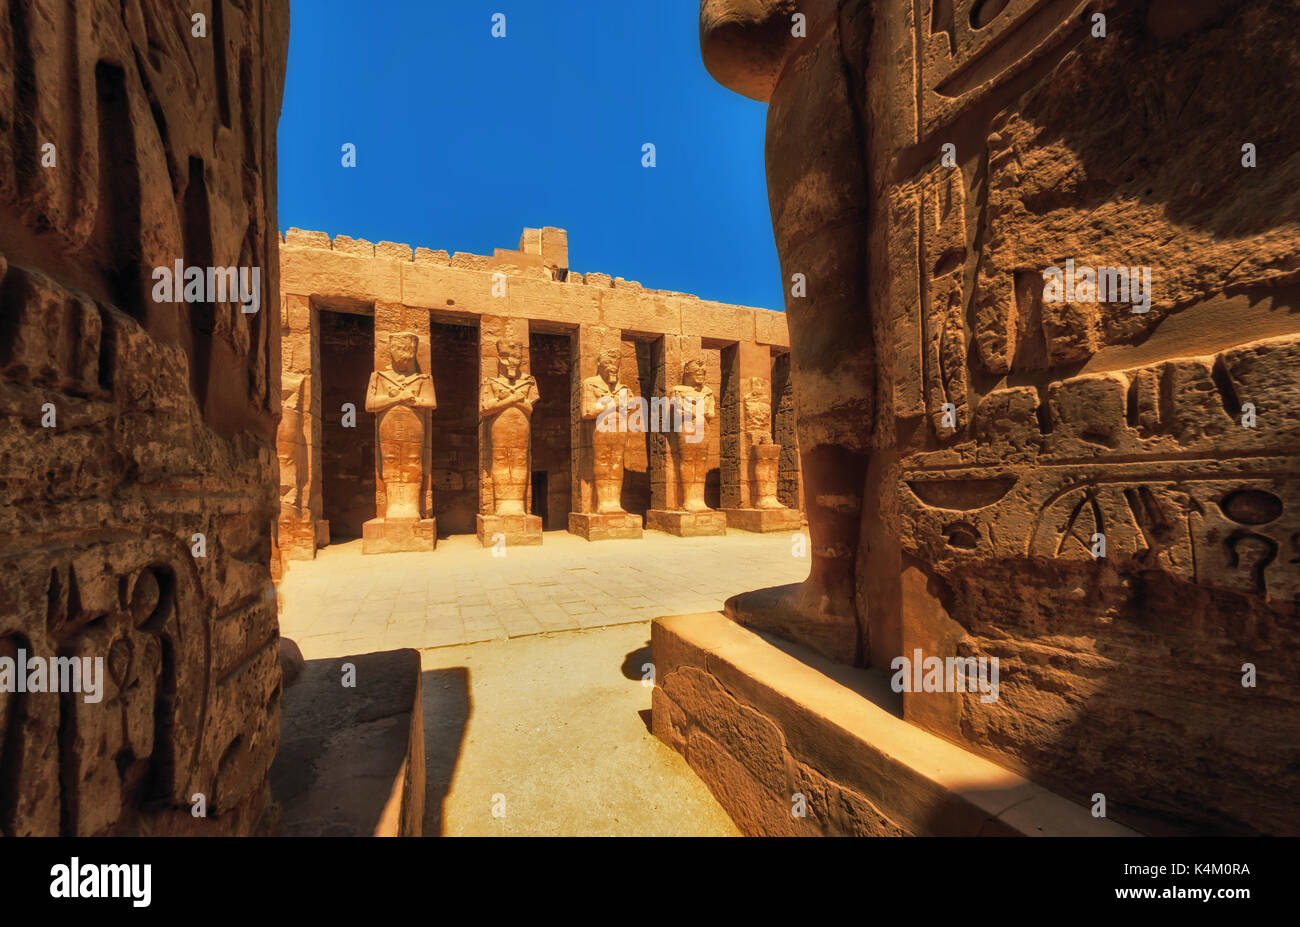 Temple de Karnak, Hall de cariatides. Louxor, Egypte Photo Stock